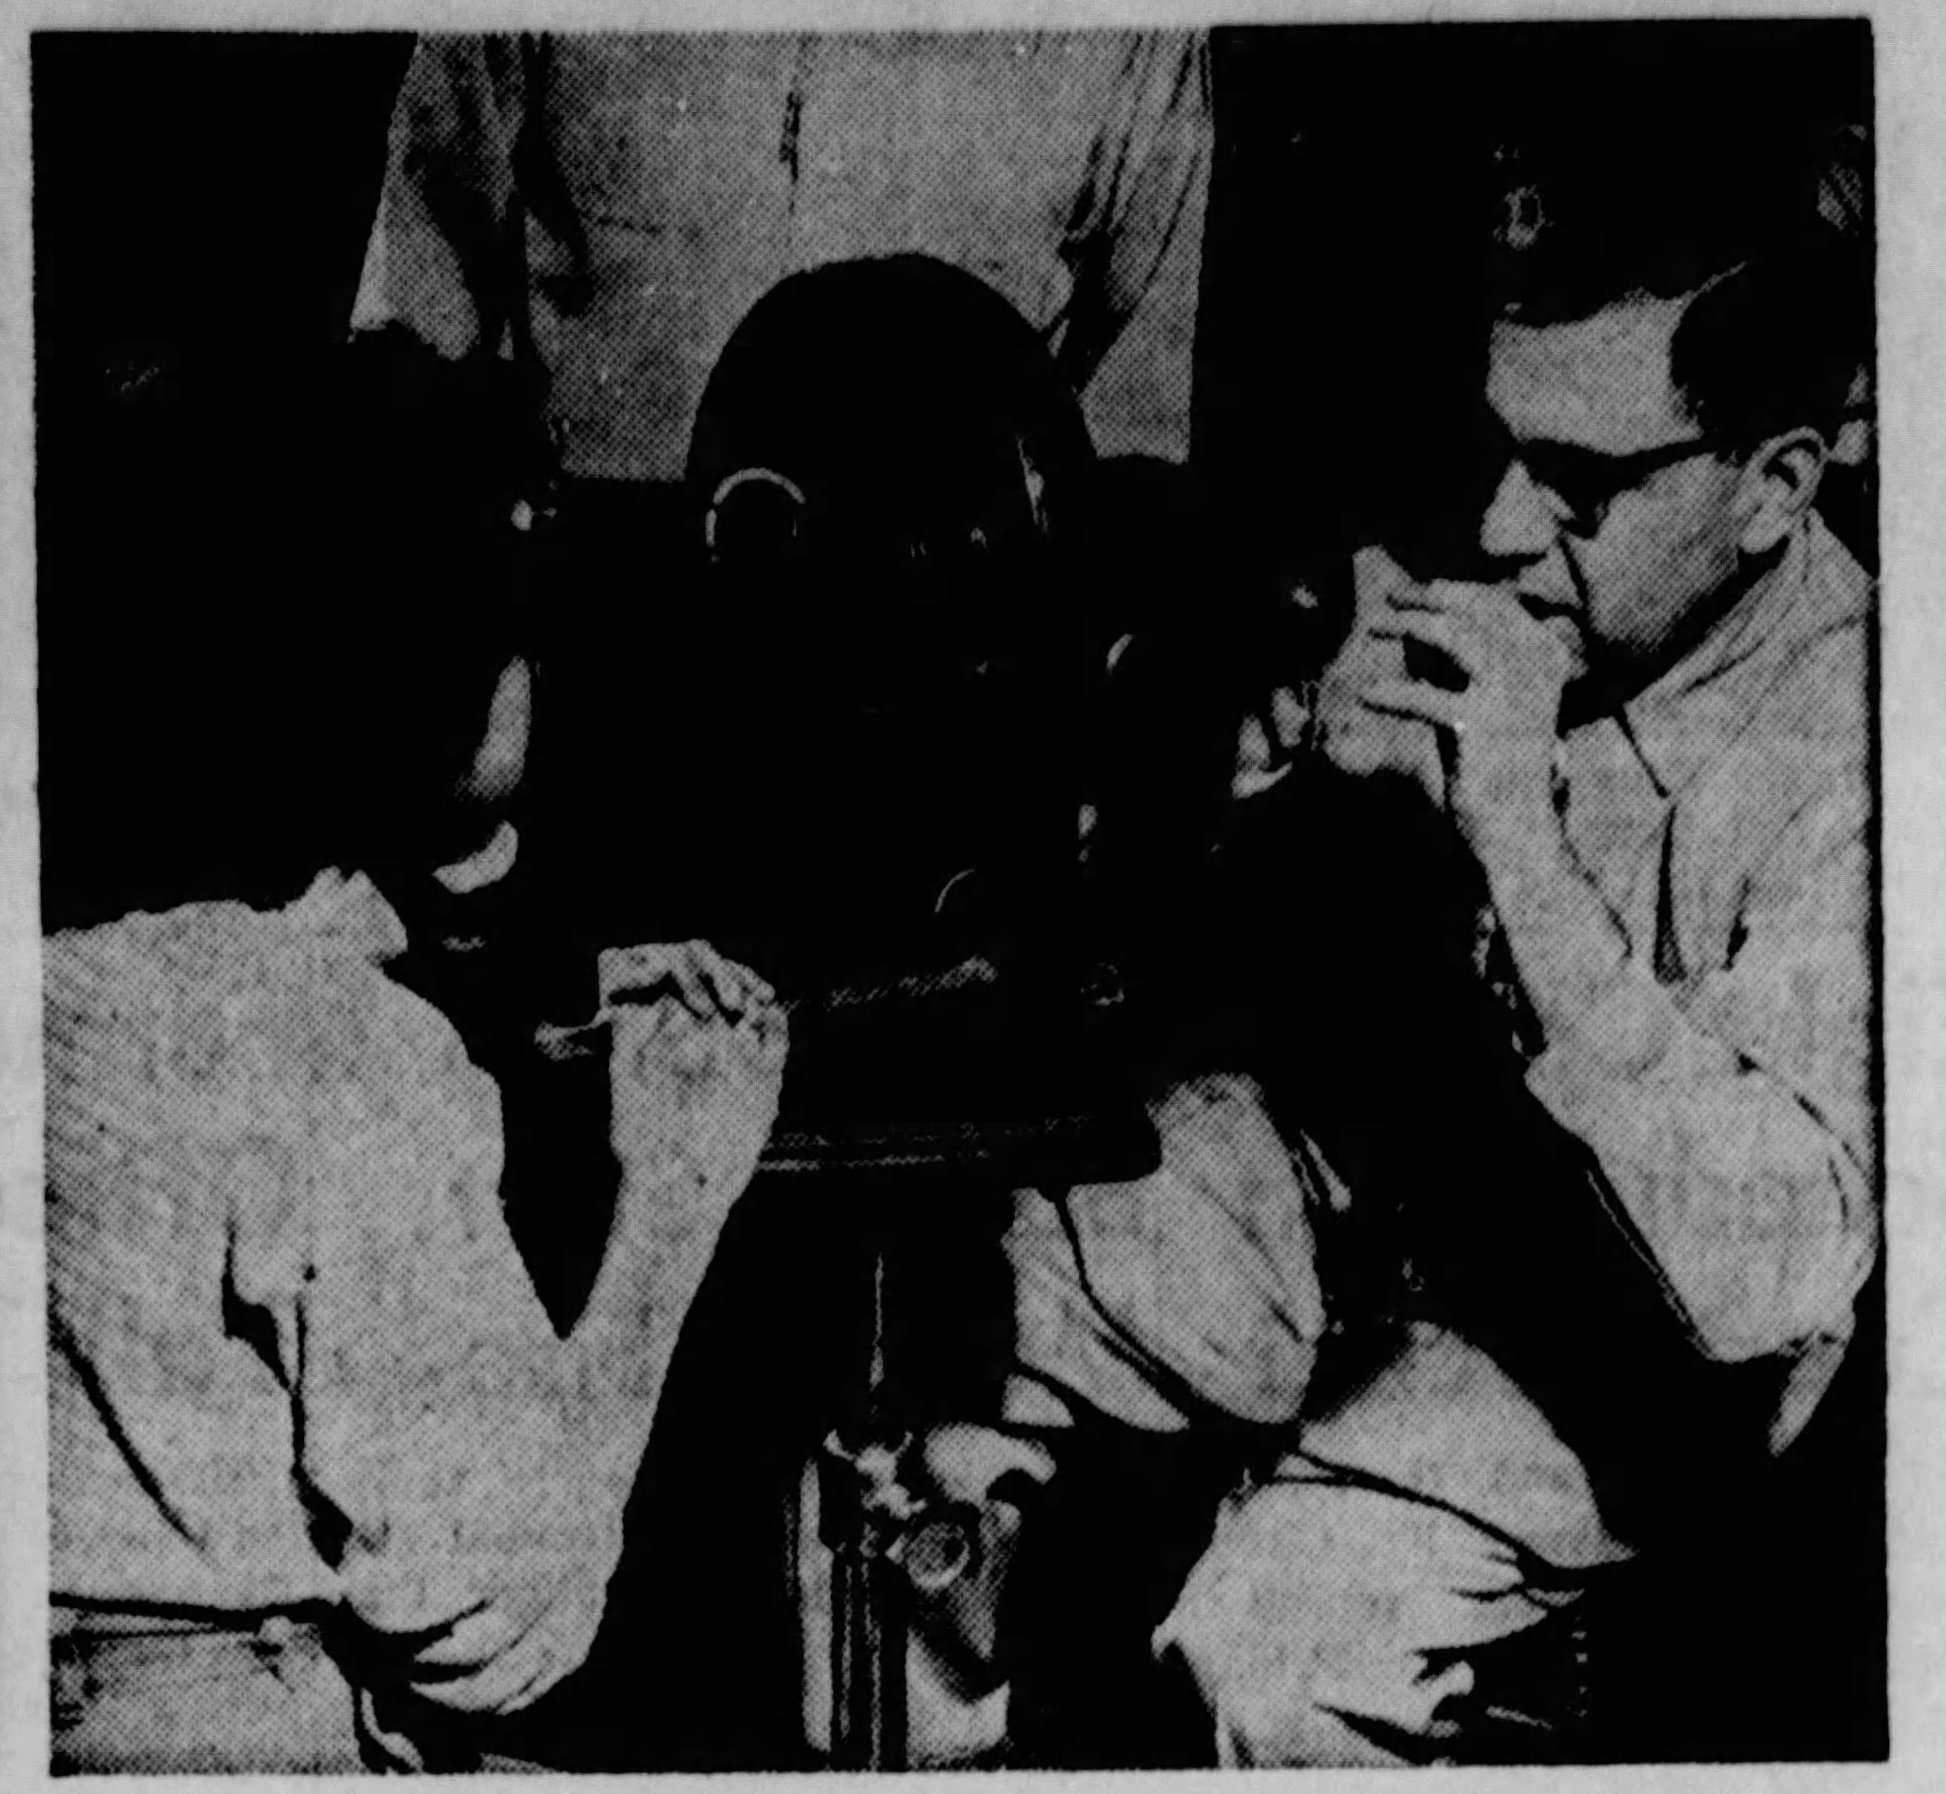 La Crosse Tribune clipping from March 10, 1955 showing Dr. Vaslow measuring the curvature of the eyes of Cynthia Whitewater for astimatism